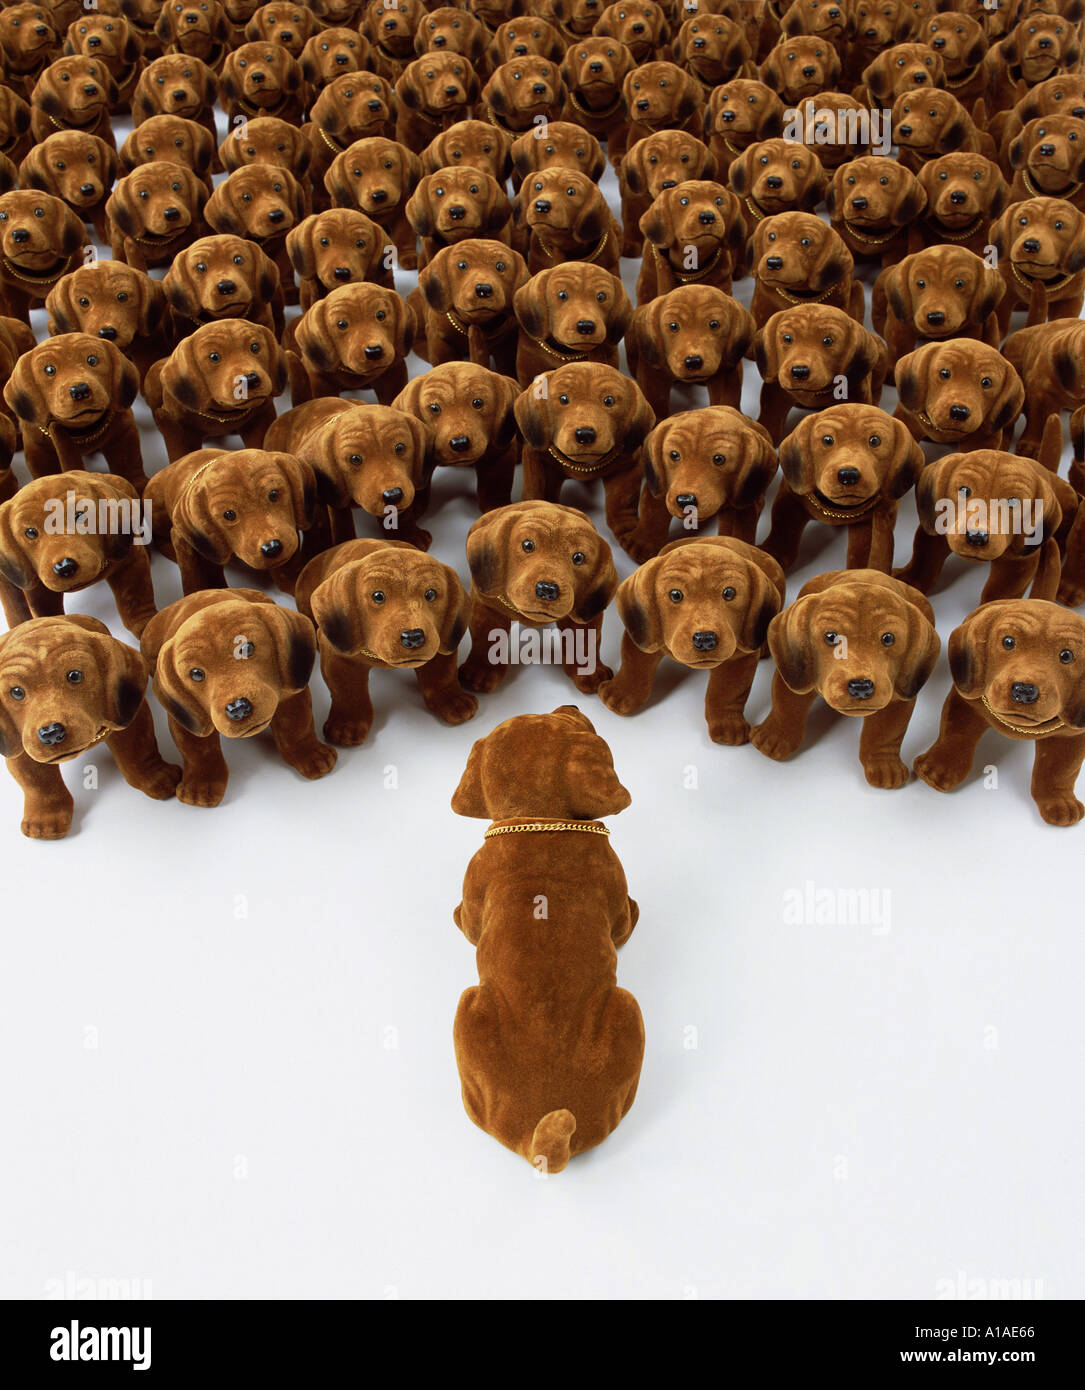 Single nodding dog talking to group of nodding dogs - Stock Image